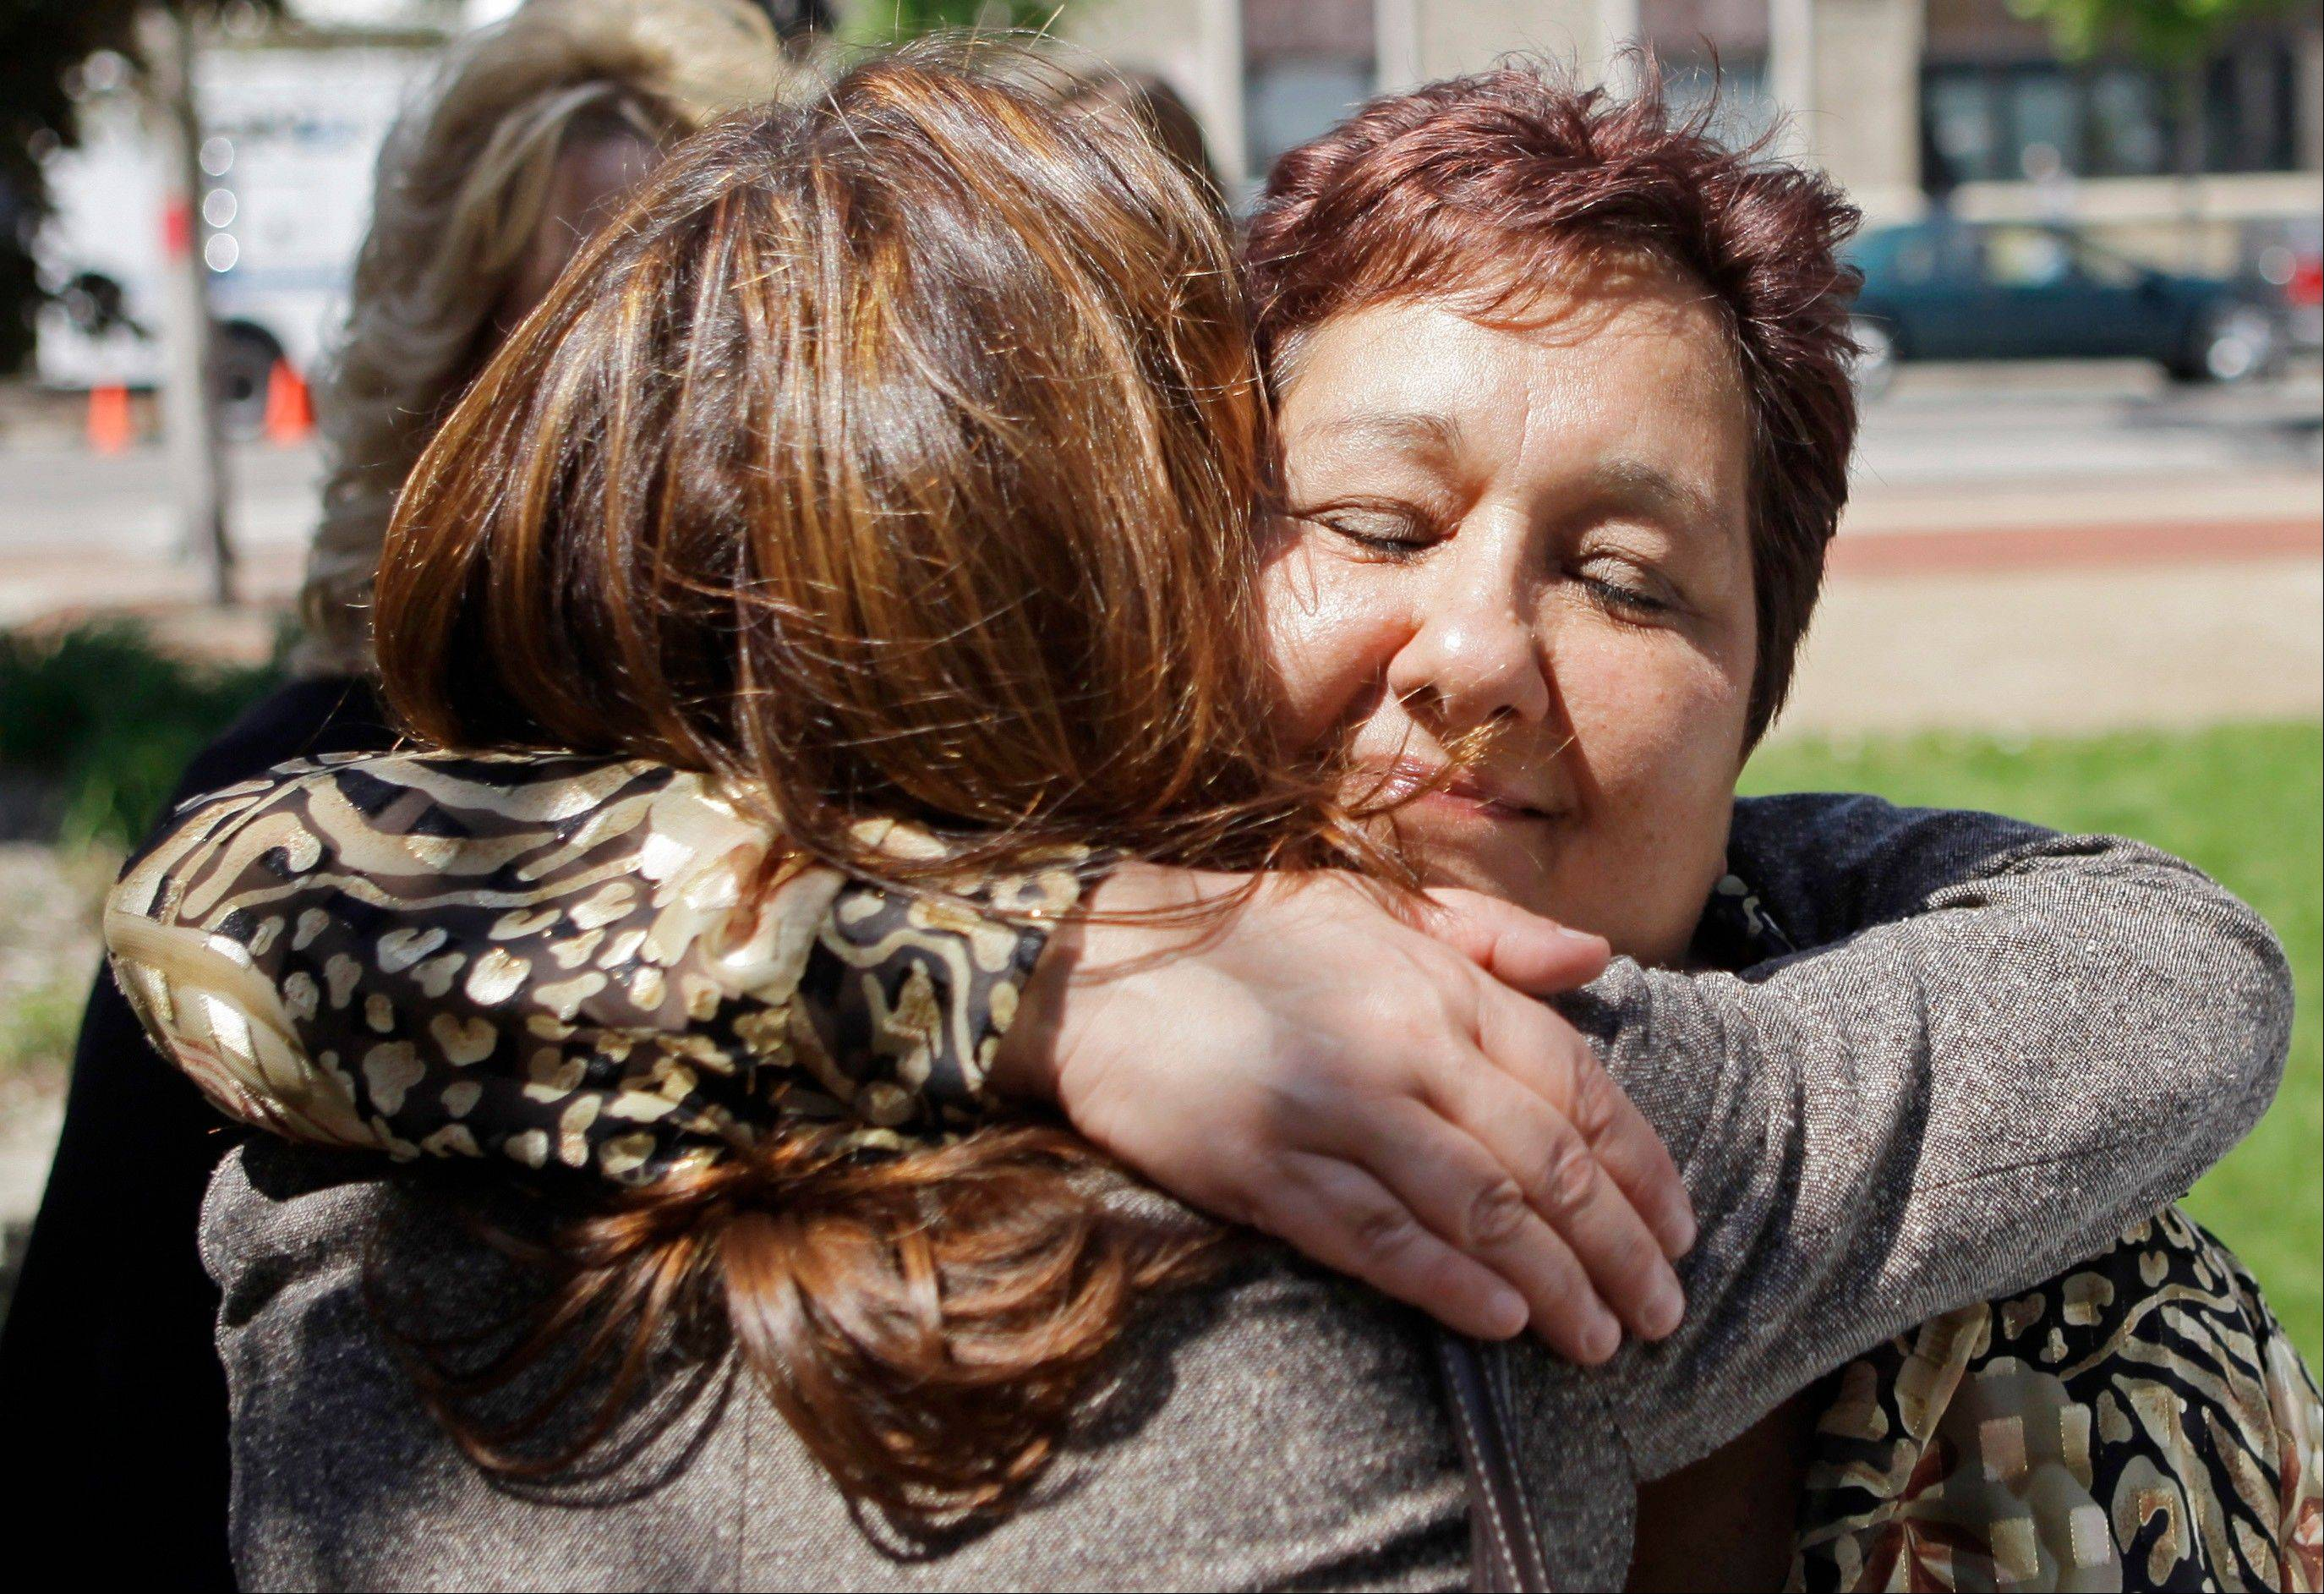 Susan Doman, right, sister of Kathleen Savio, gets a hug outside the Will County courthouse after a May 22, 2009, bond hearing where a judge refused to reduce former Drew Peterson's $20 million bail.